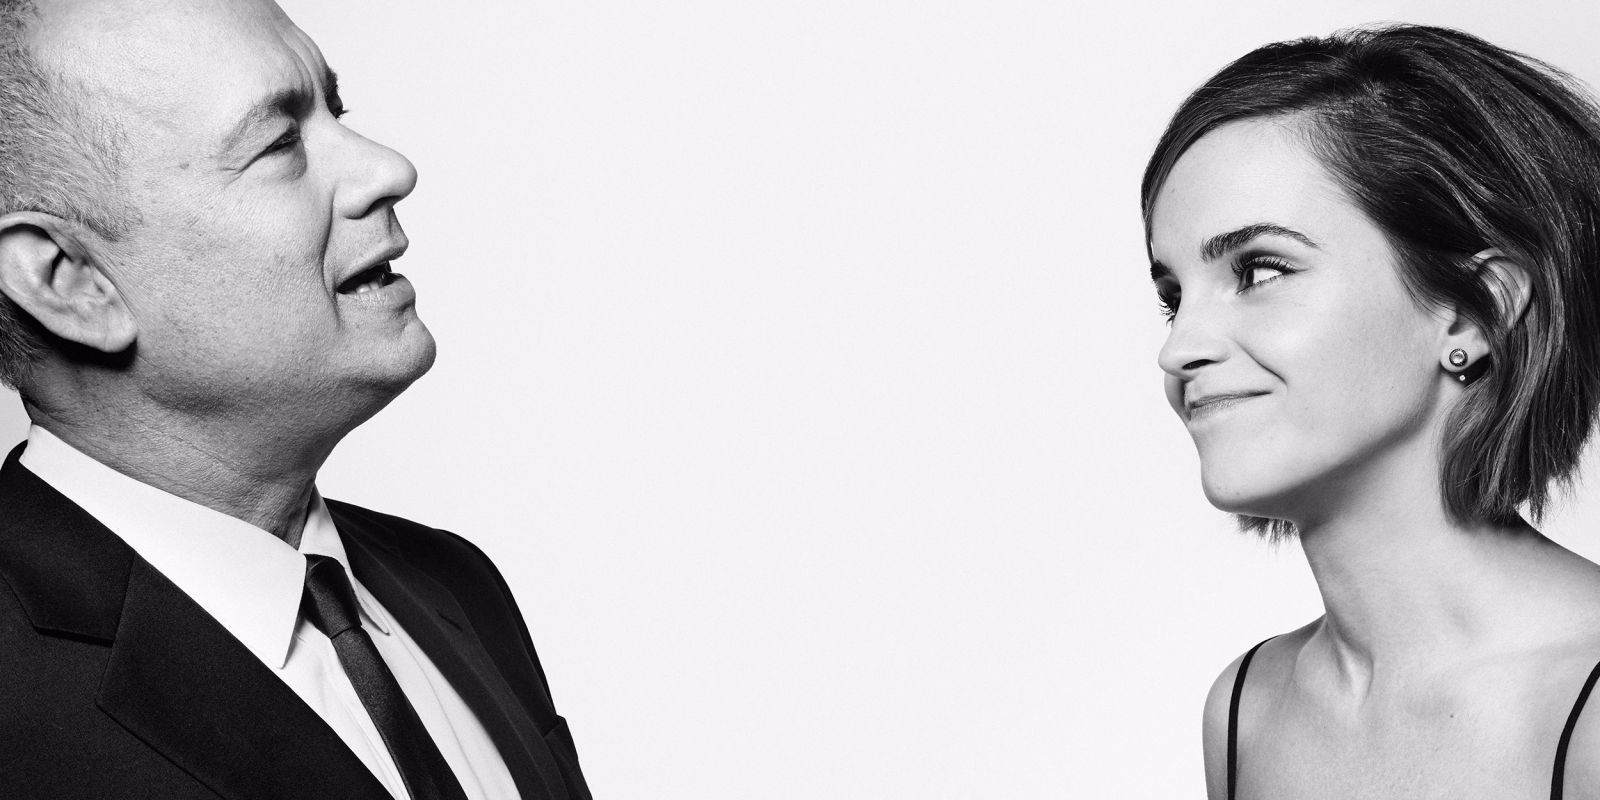 Actors Tom Hanks and Emma Watson from their photoshoot for Esquire UK Magazine (March 2016) where they discussed gender equality in an interview promoting their upcoming film The Circle.